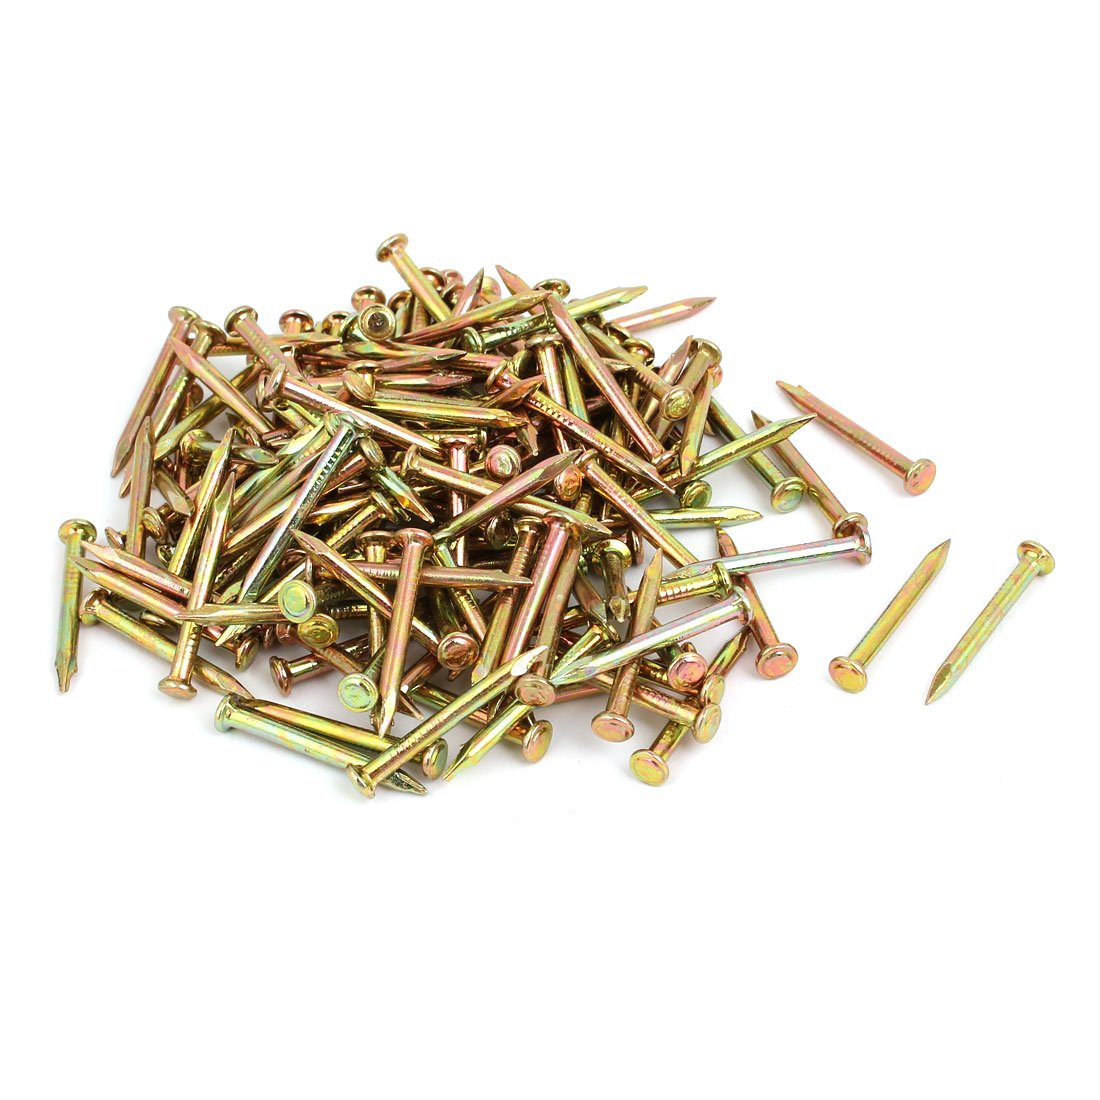 uxcell 200pcs 30mm Length Steel Point Tip Cement Nail Bronze Tone